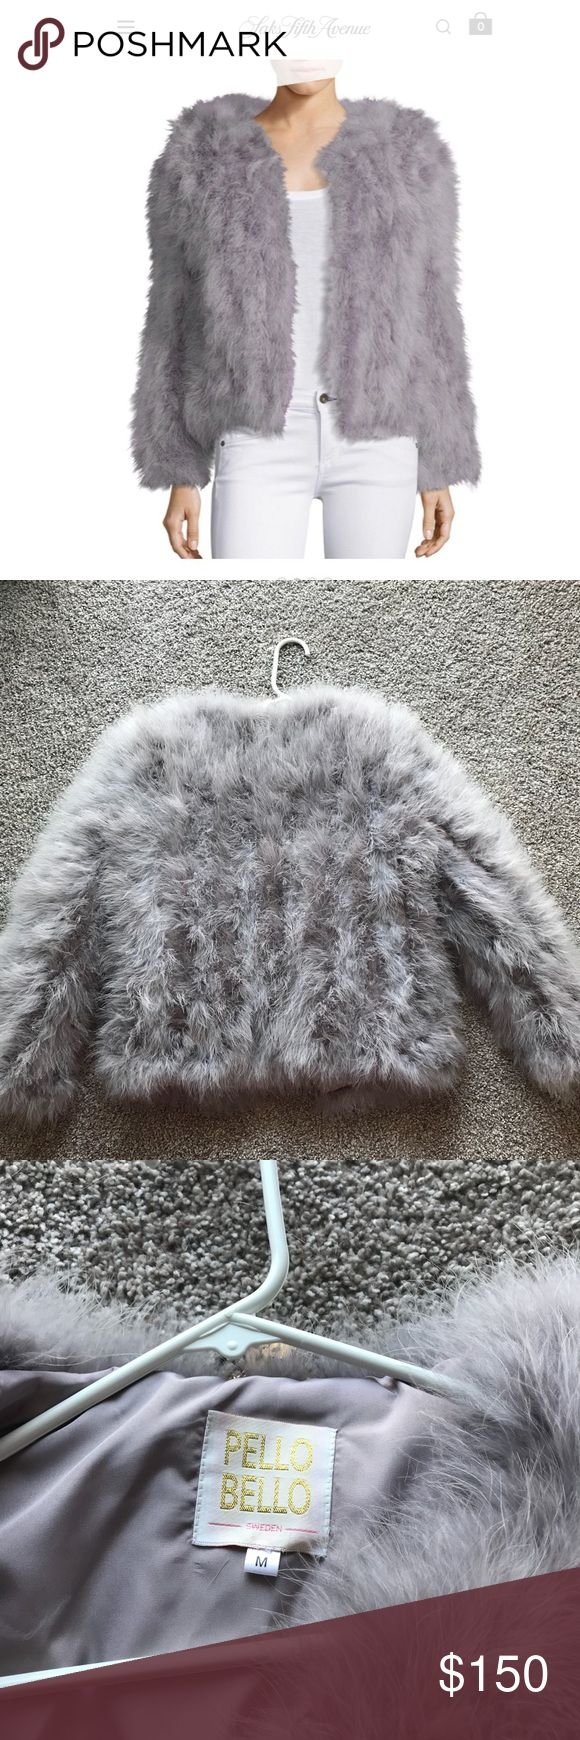 Pello Bello jack fluffy feather fever jacket Grey Ostrich feather jacket. Never been worn!!!  Available to ship immediately! pello bello Jackets & Coats